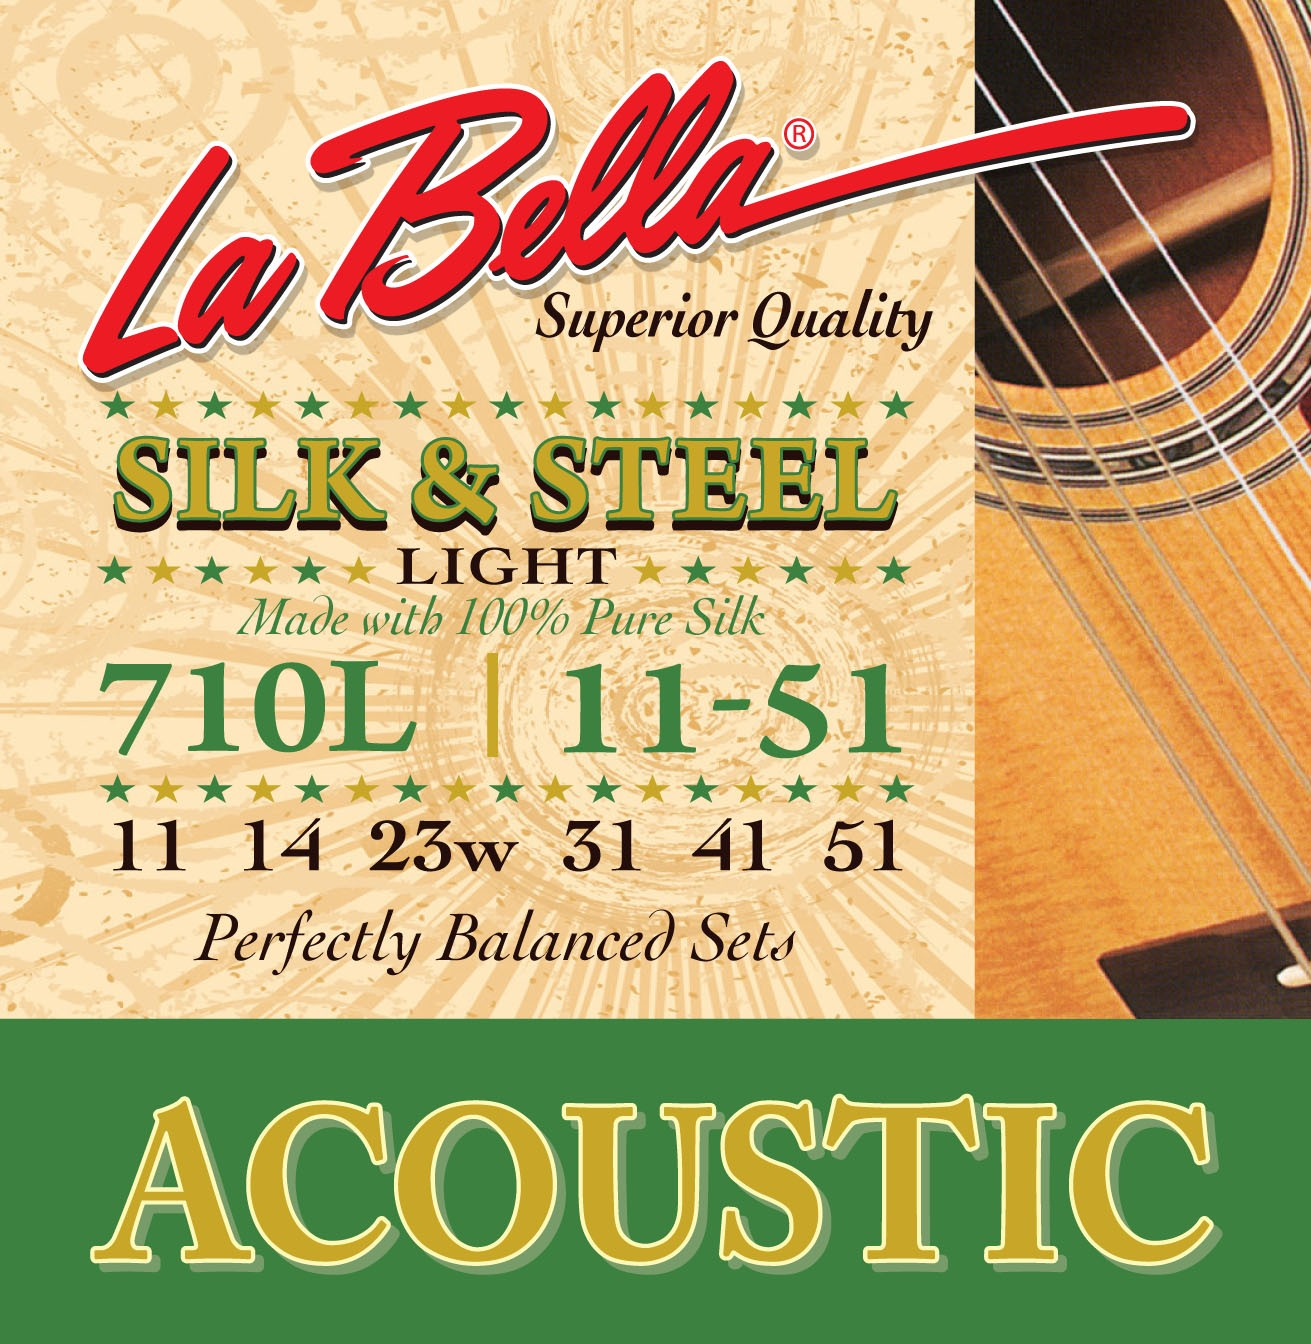 La Bella Acoustic Guitar Strings - Silk & Steel Series